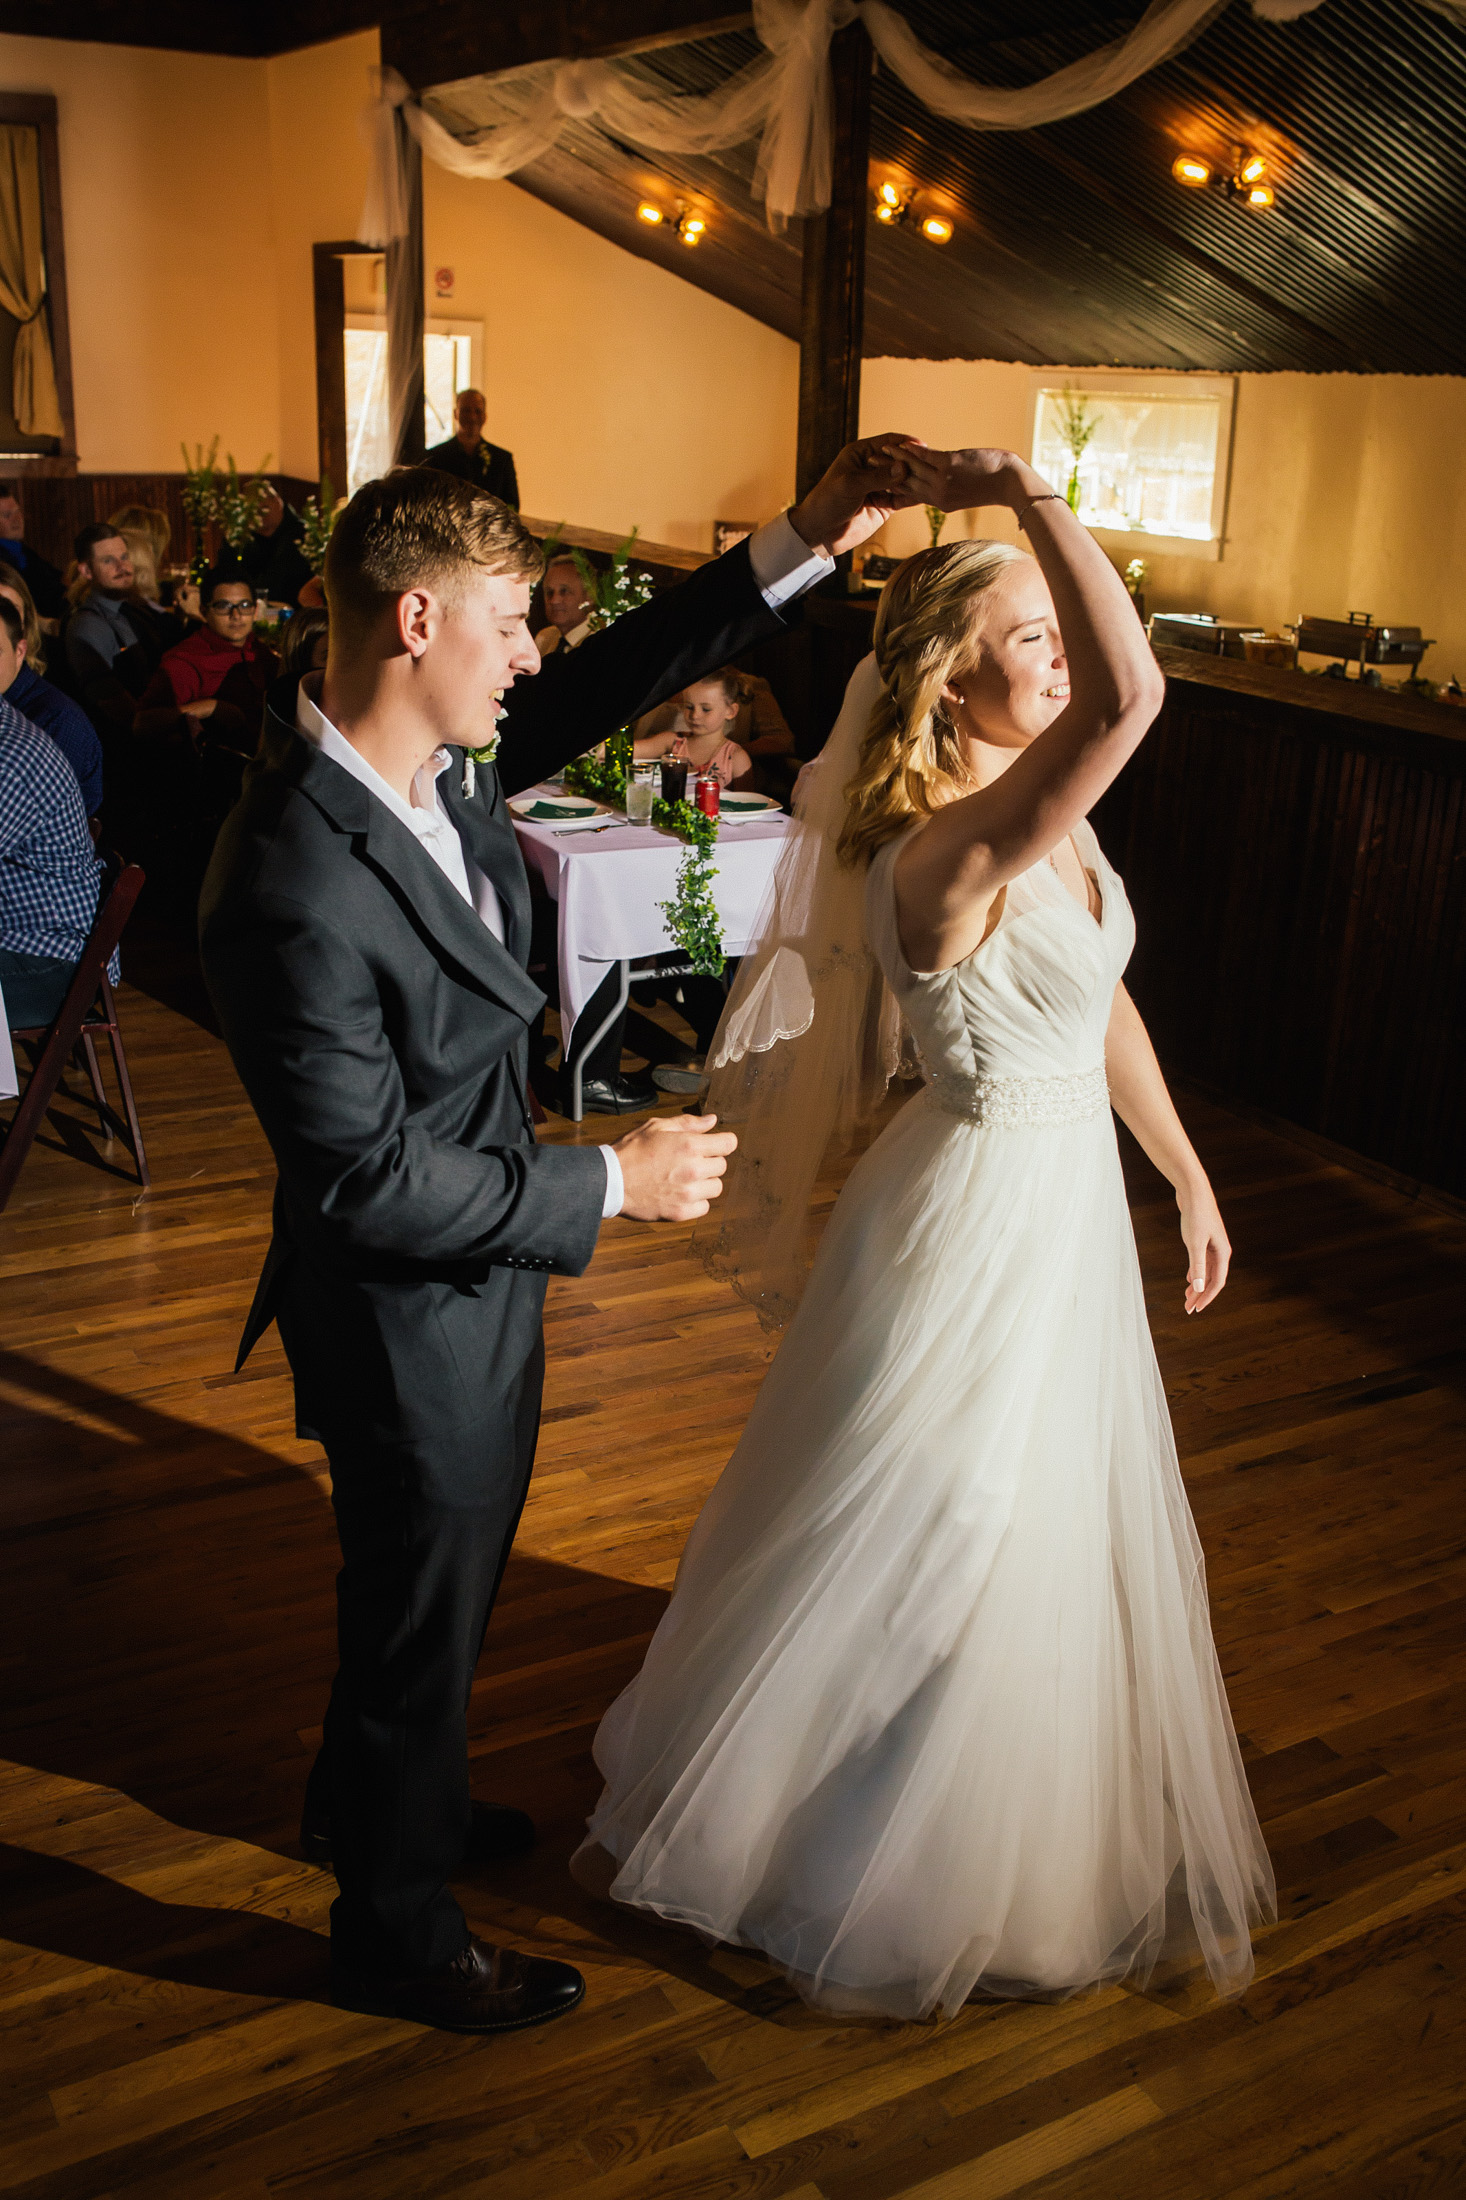 Groom twirls bride during first dance inside banquet hall at Willow Vale Events.